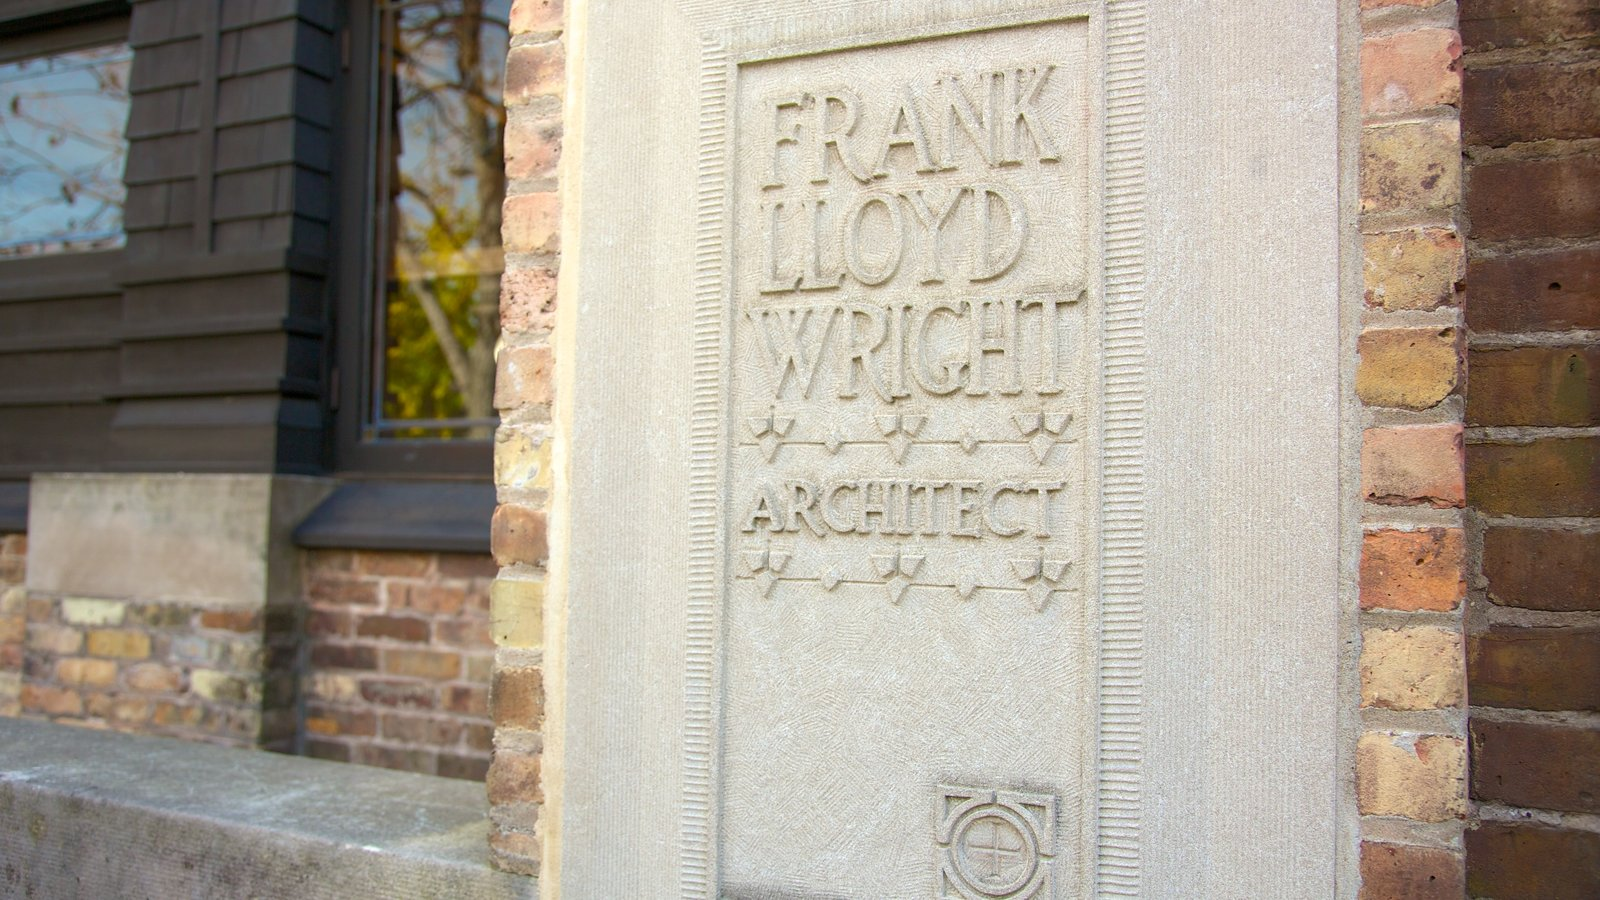 Frank Lloyd Wright Home and Studio which includes heritage architecture and signage